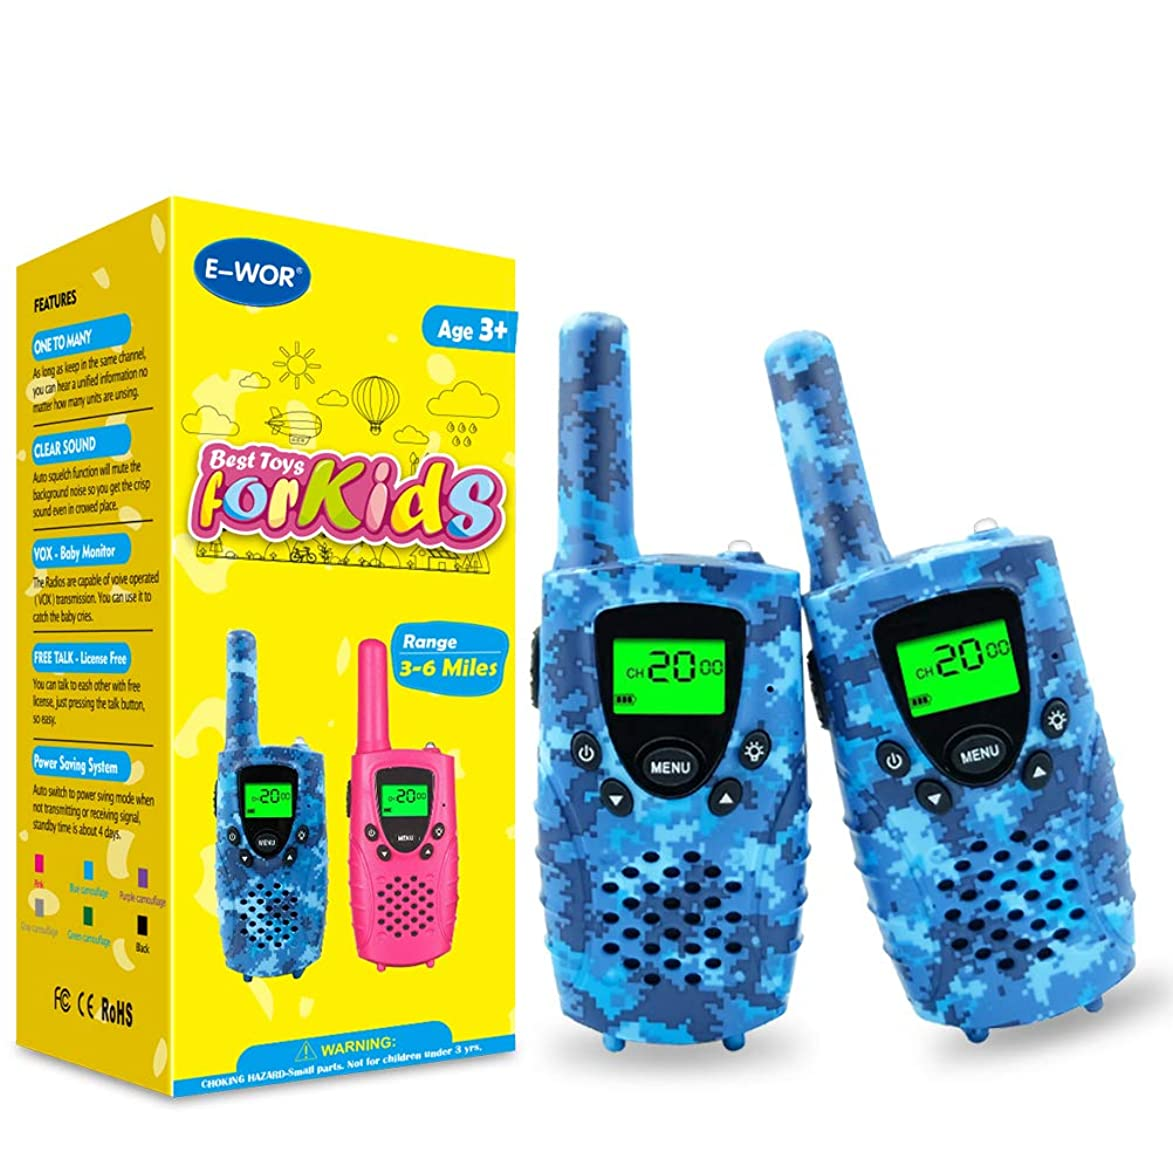 Walkie Talkies for Kids,22 Channels FRS/GMRS UHF Kids Walkie Talkies, 2 Way Radios 4 Miles Walkie Talkies Kids Toys with Flashlight by EWOR, 1 Pair,Camo (Camo Blue)